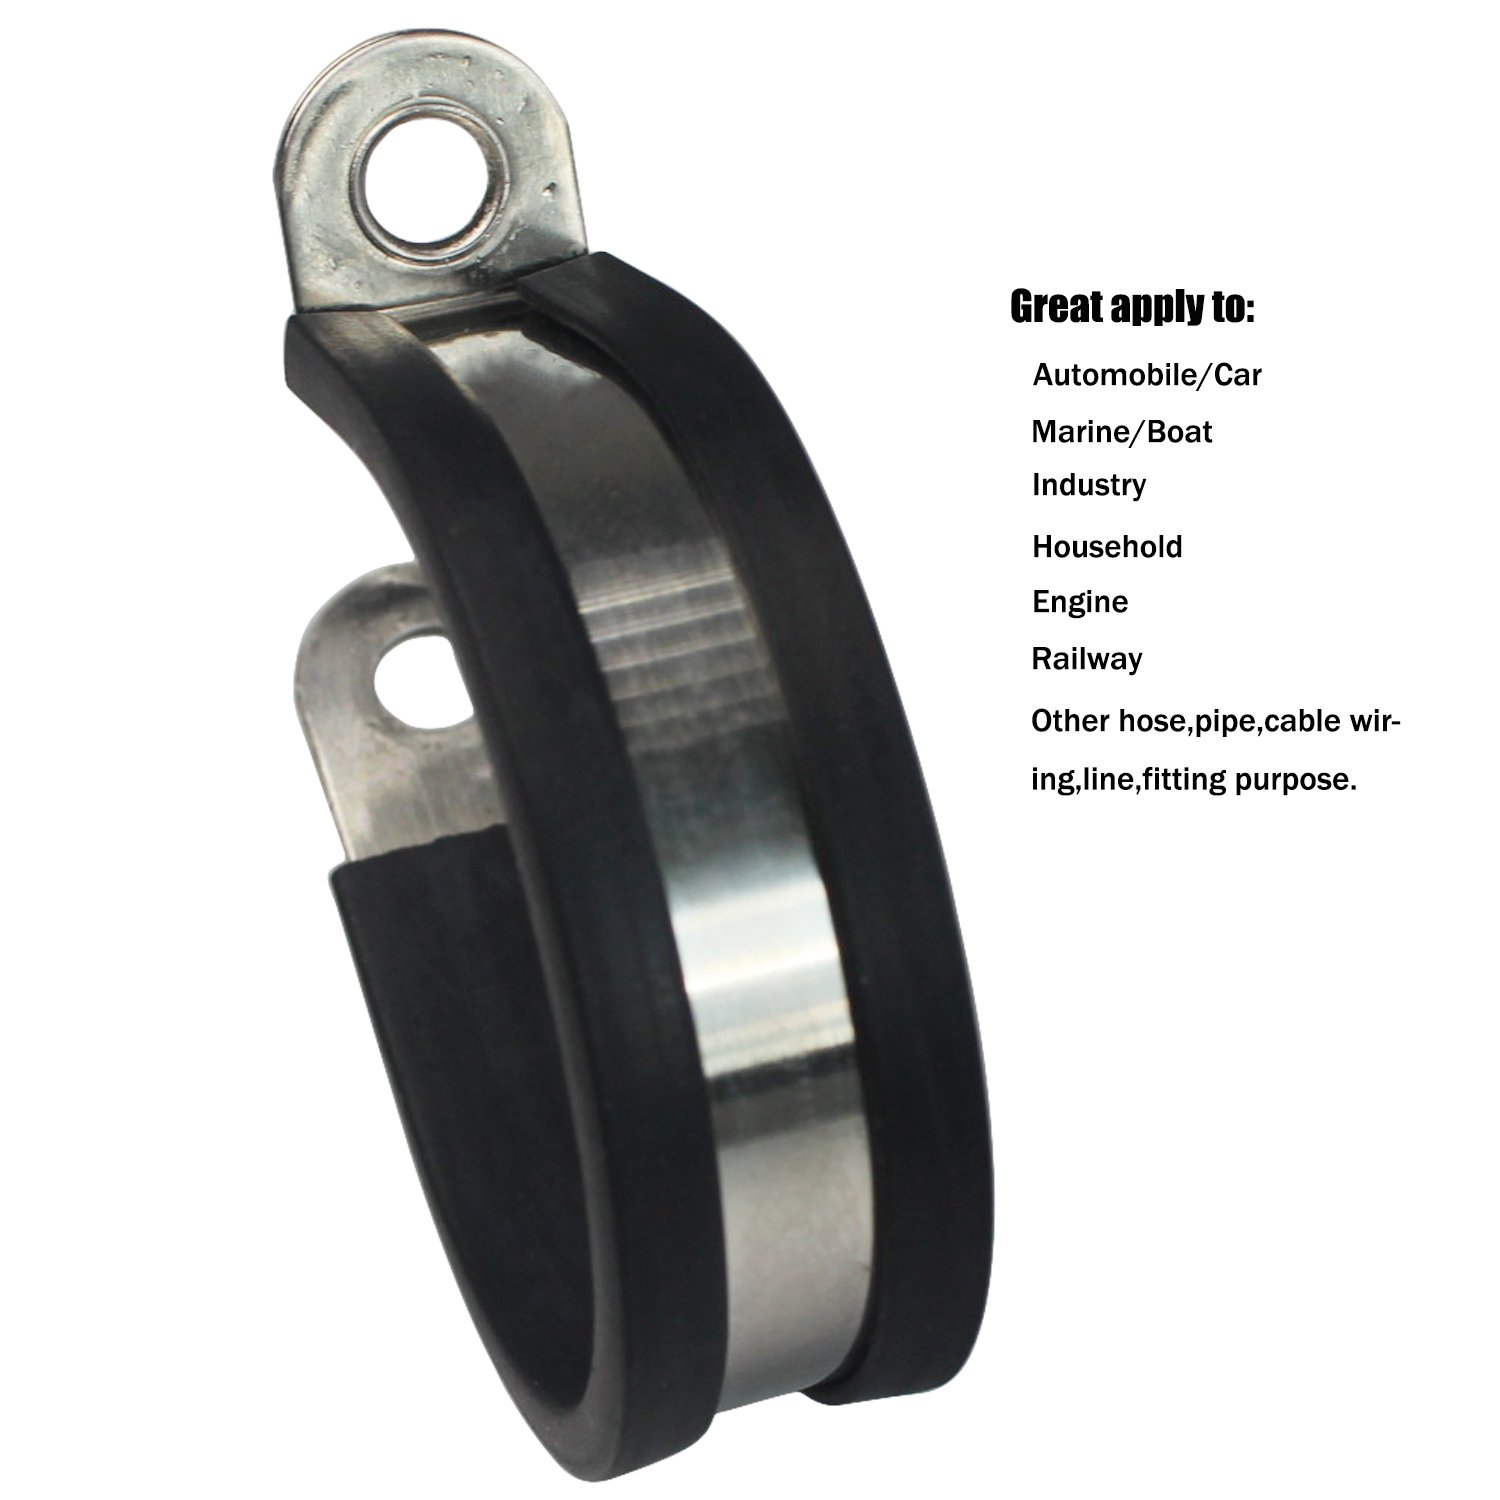 1 Ronteix 20 Pack,Rubber Cushioned 304 Stainless Steel Cable Clamp,Pipe Clamp,Metal Clamp,Tube Clamp for Pipe Fitting